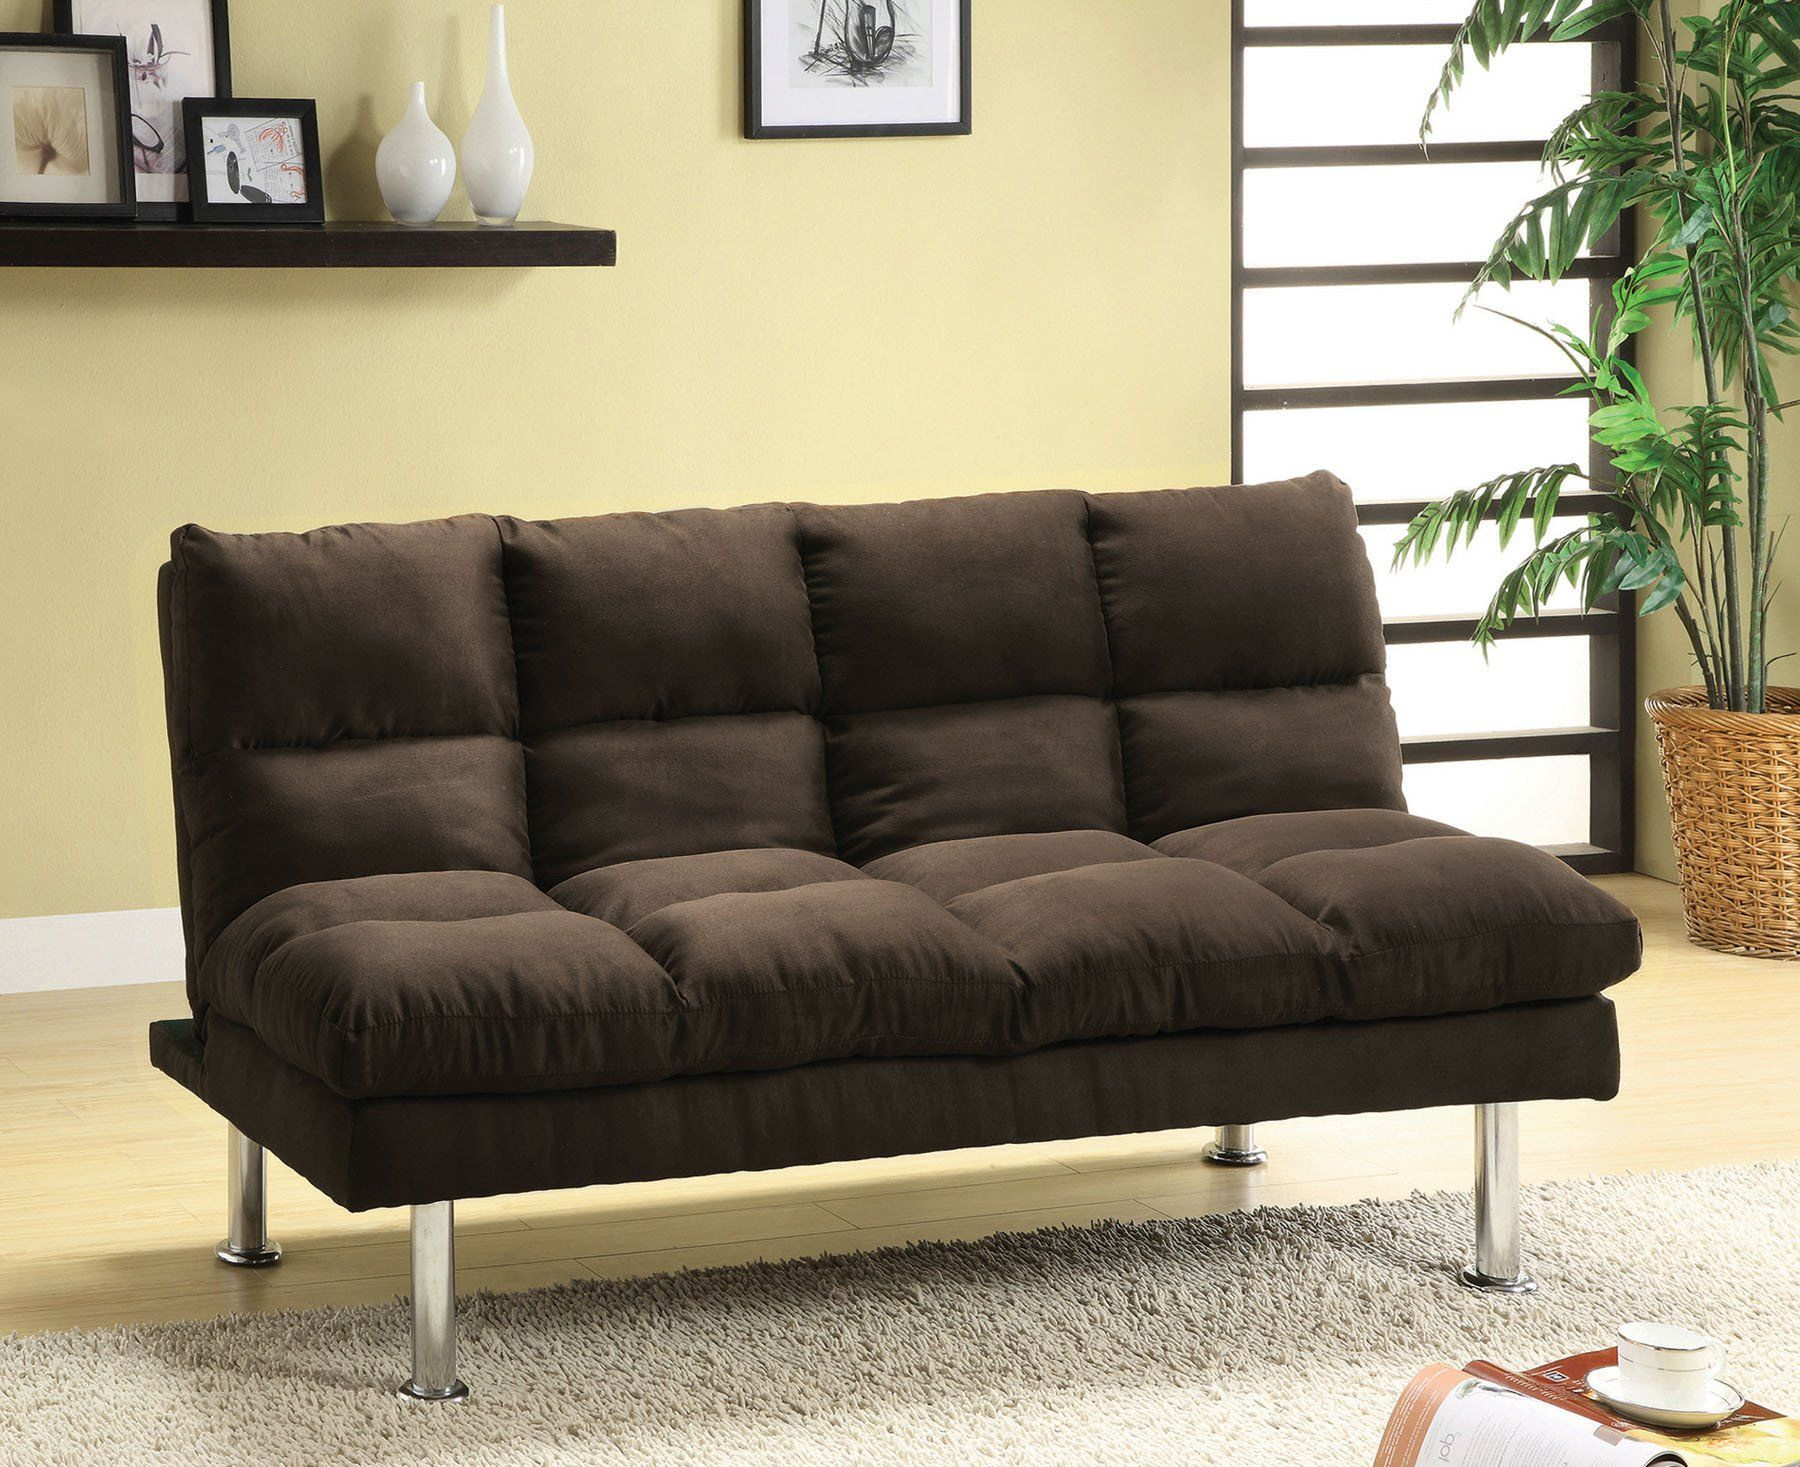 The New Furniture Of America Saratoga Sofa Futon Provides A Comfortable Seat And Beautiful Style Learn More Save Right Here At Las Vegas